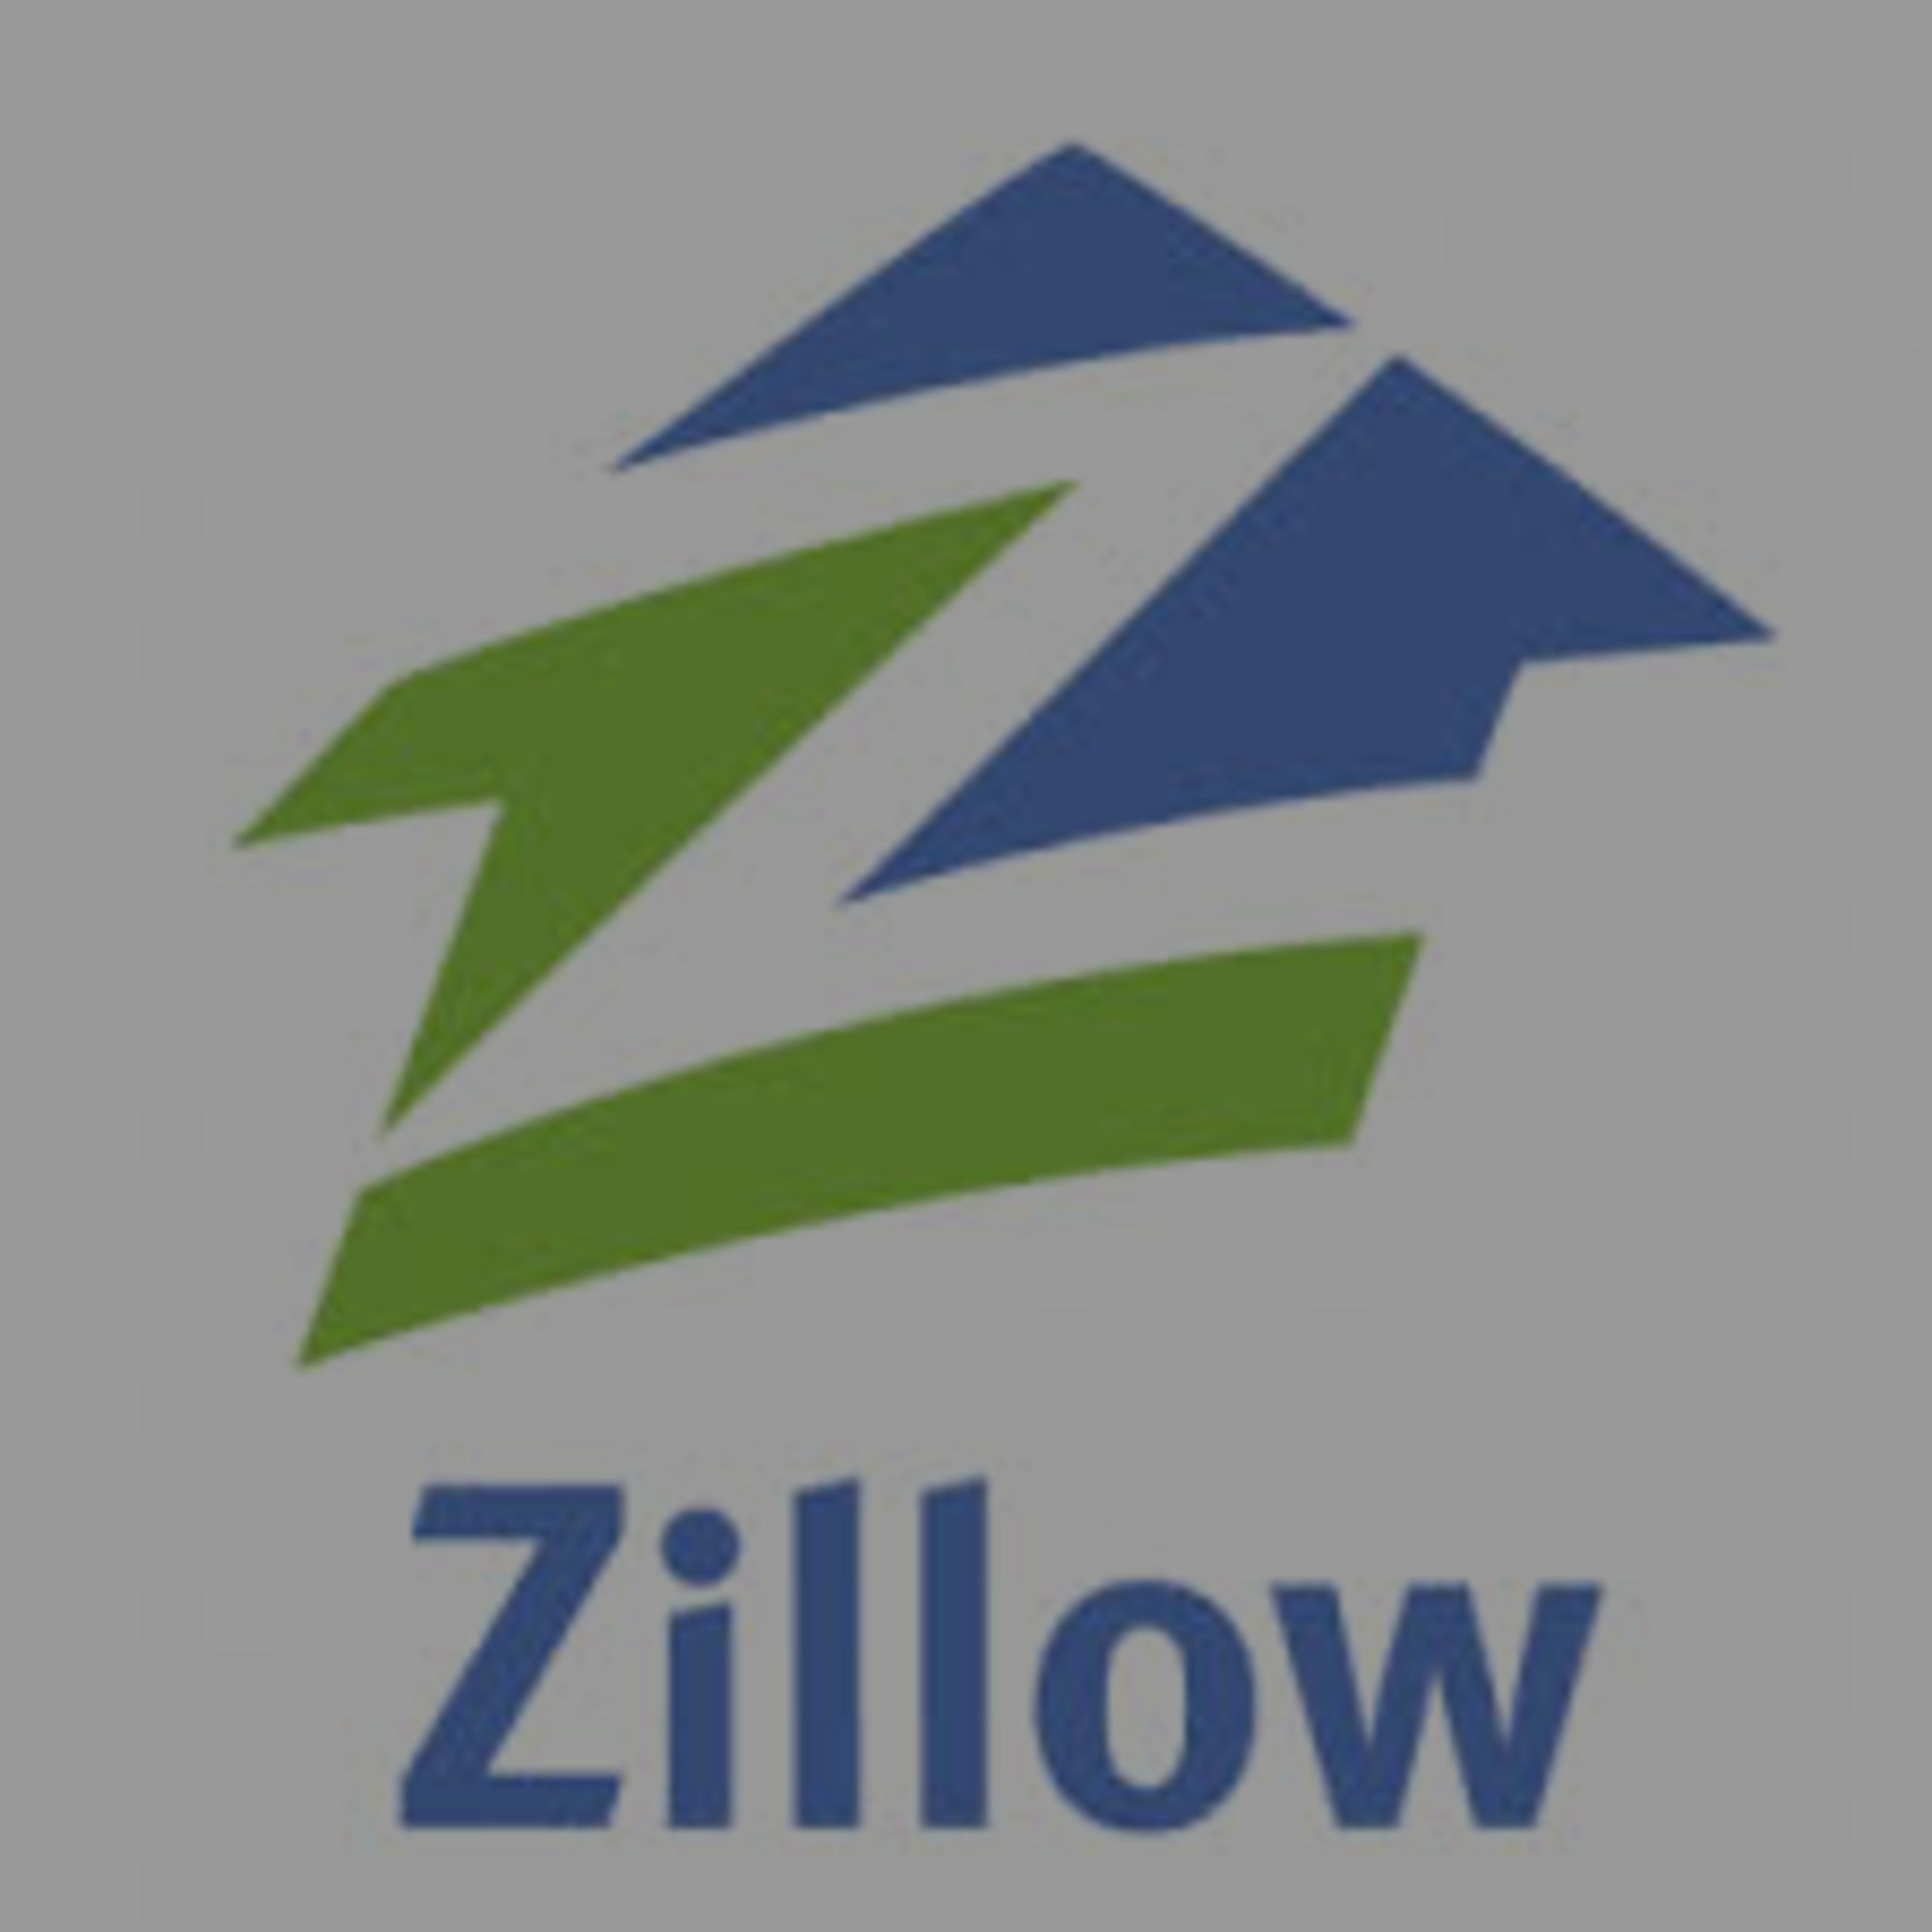 Is Zillow Accurate?